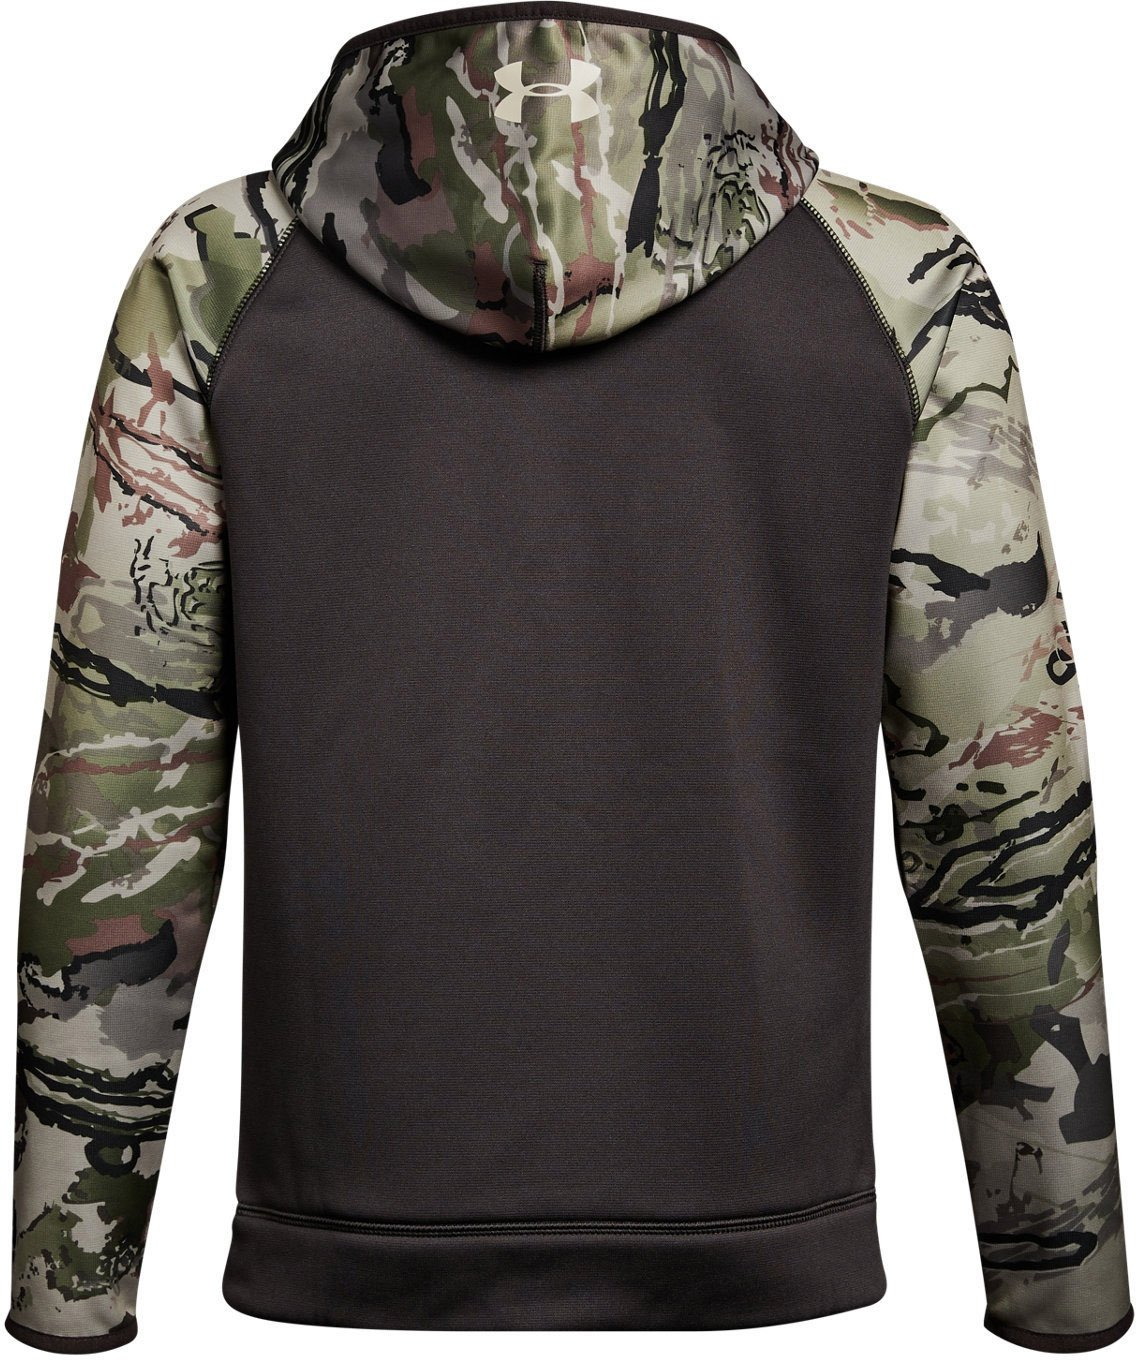 Amazon.com: Under Armour Outerwear Boys Armourfleece Camo Blocked Hoodie: Sports & Outdoors